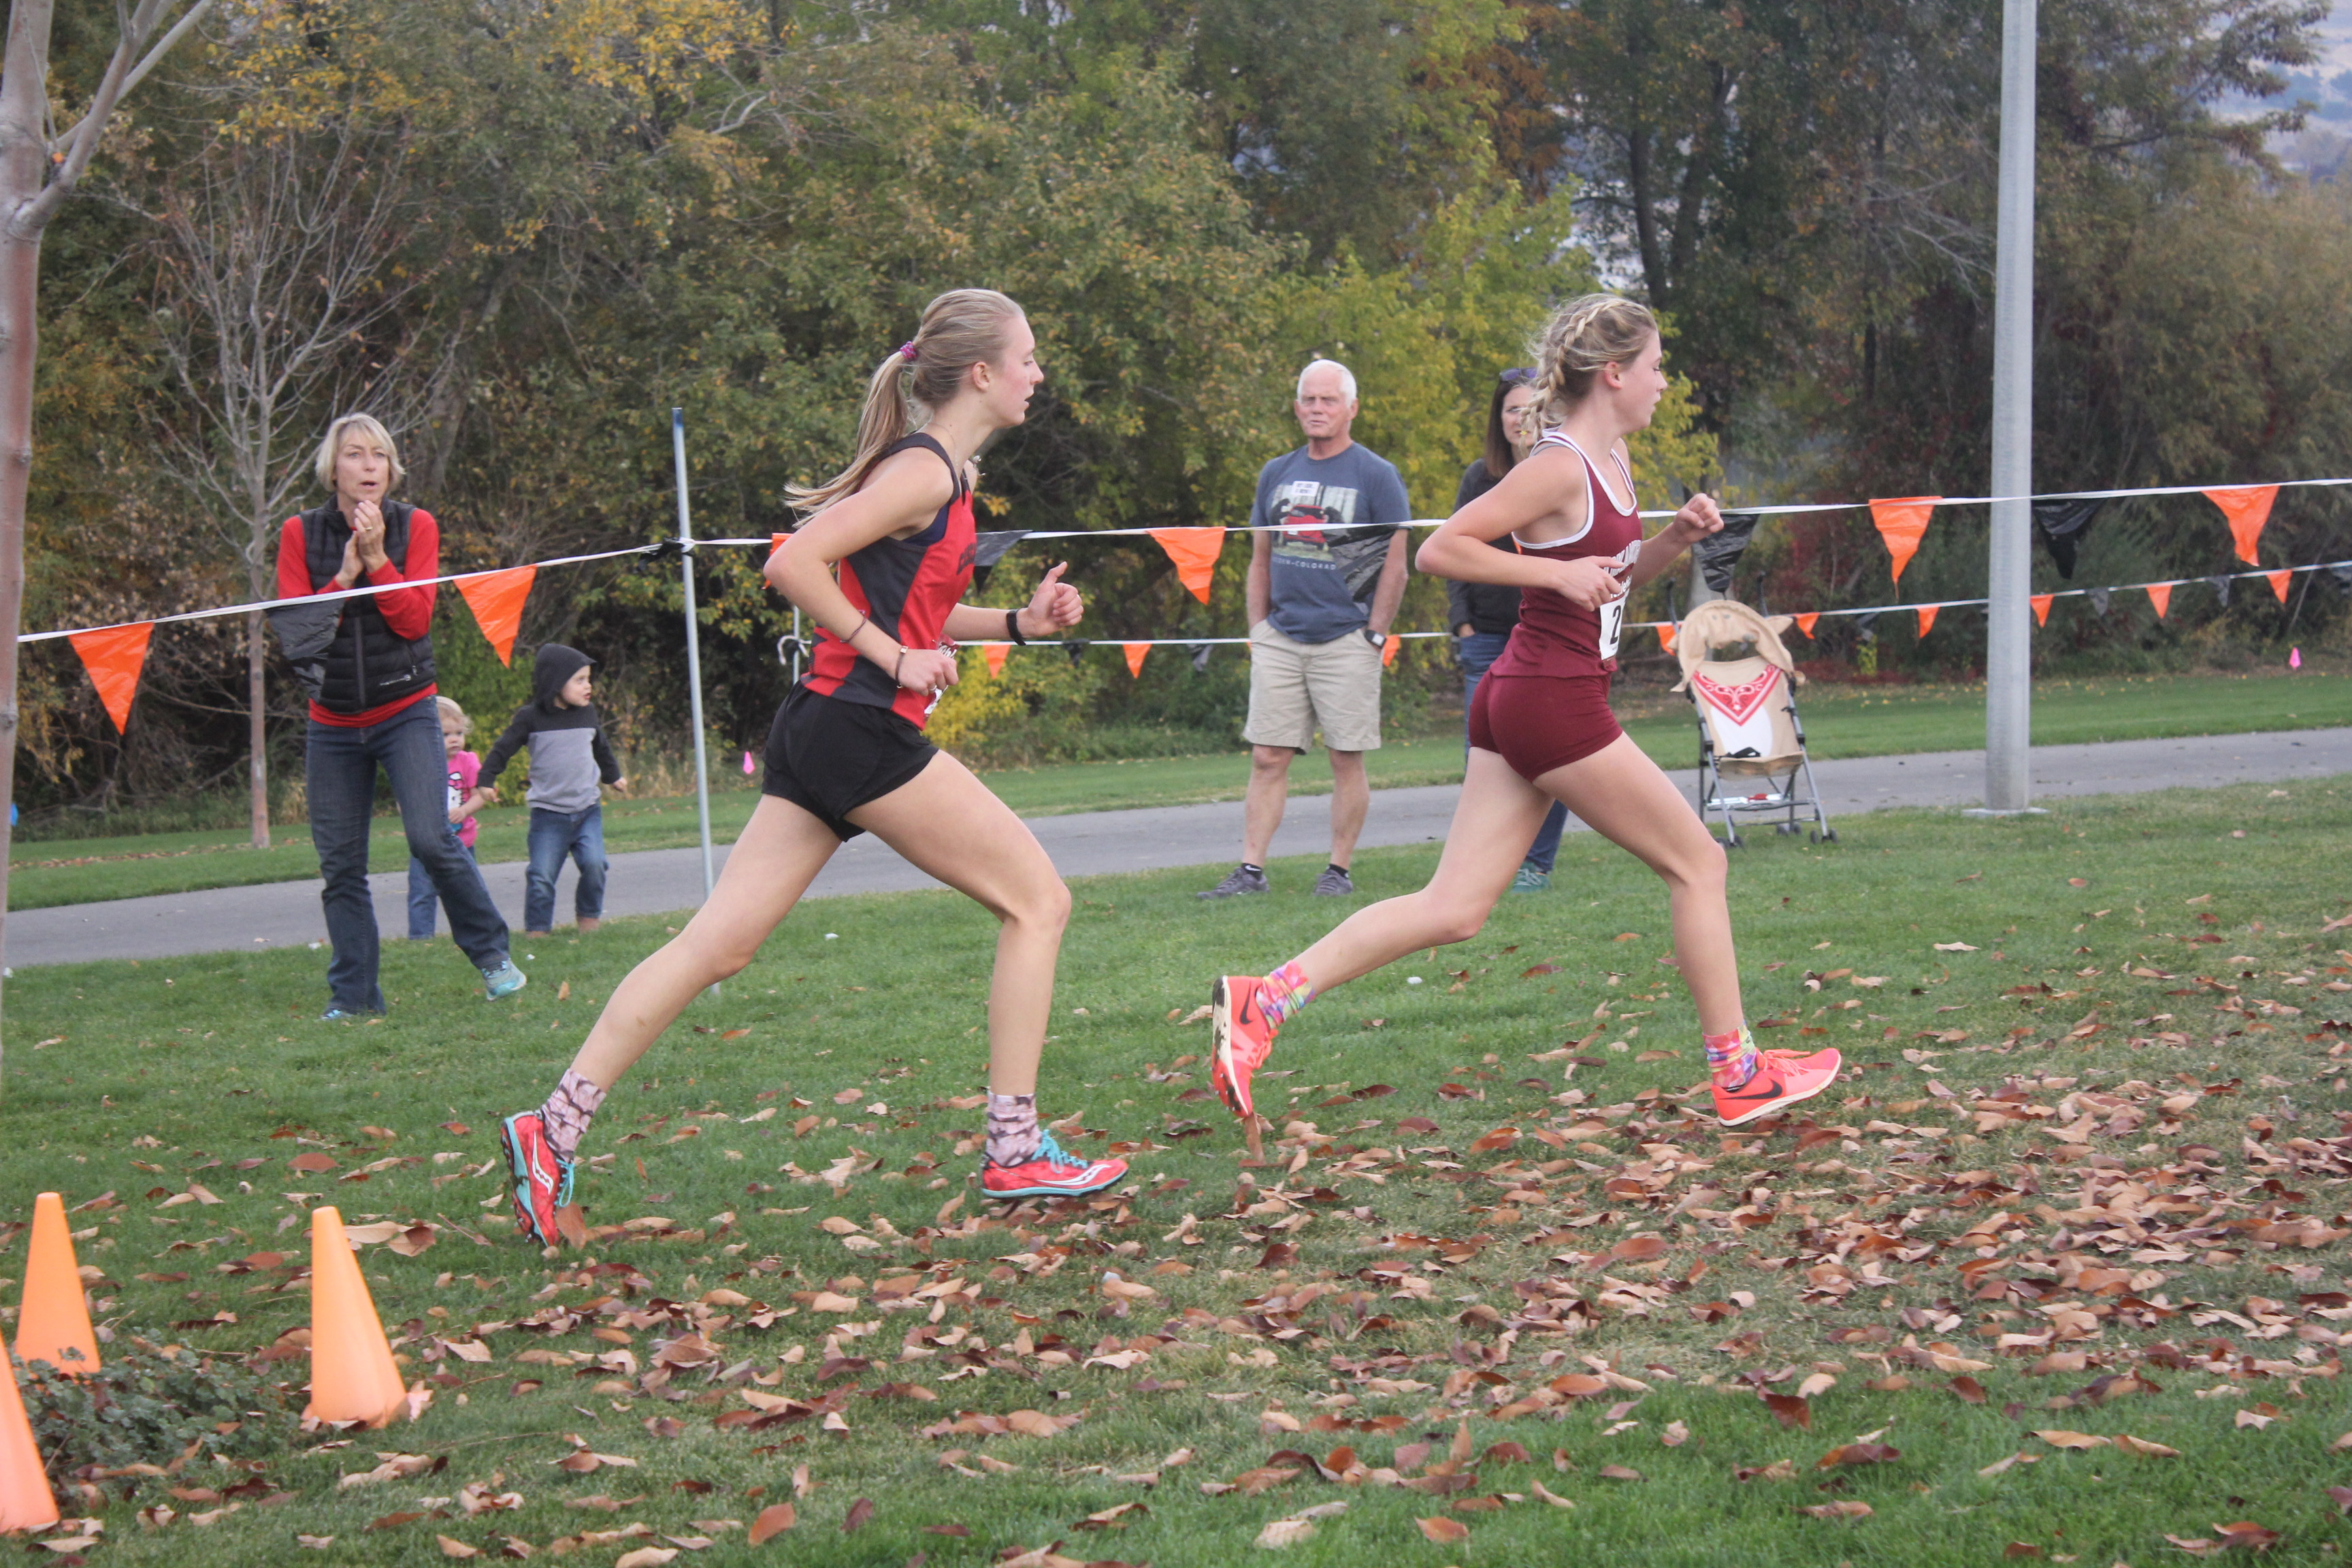 McDevitt closes in on competition.